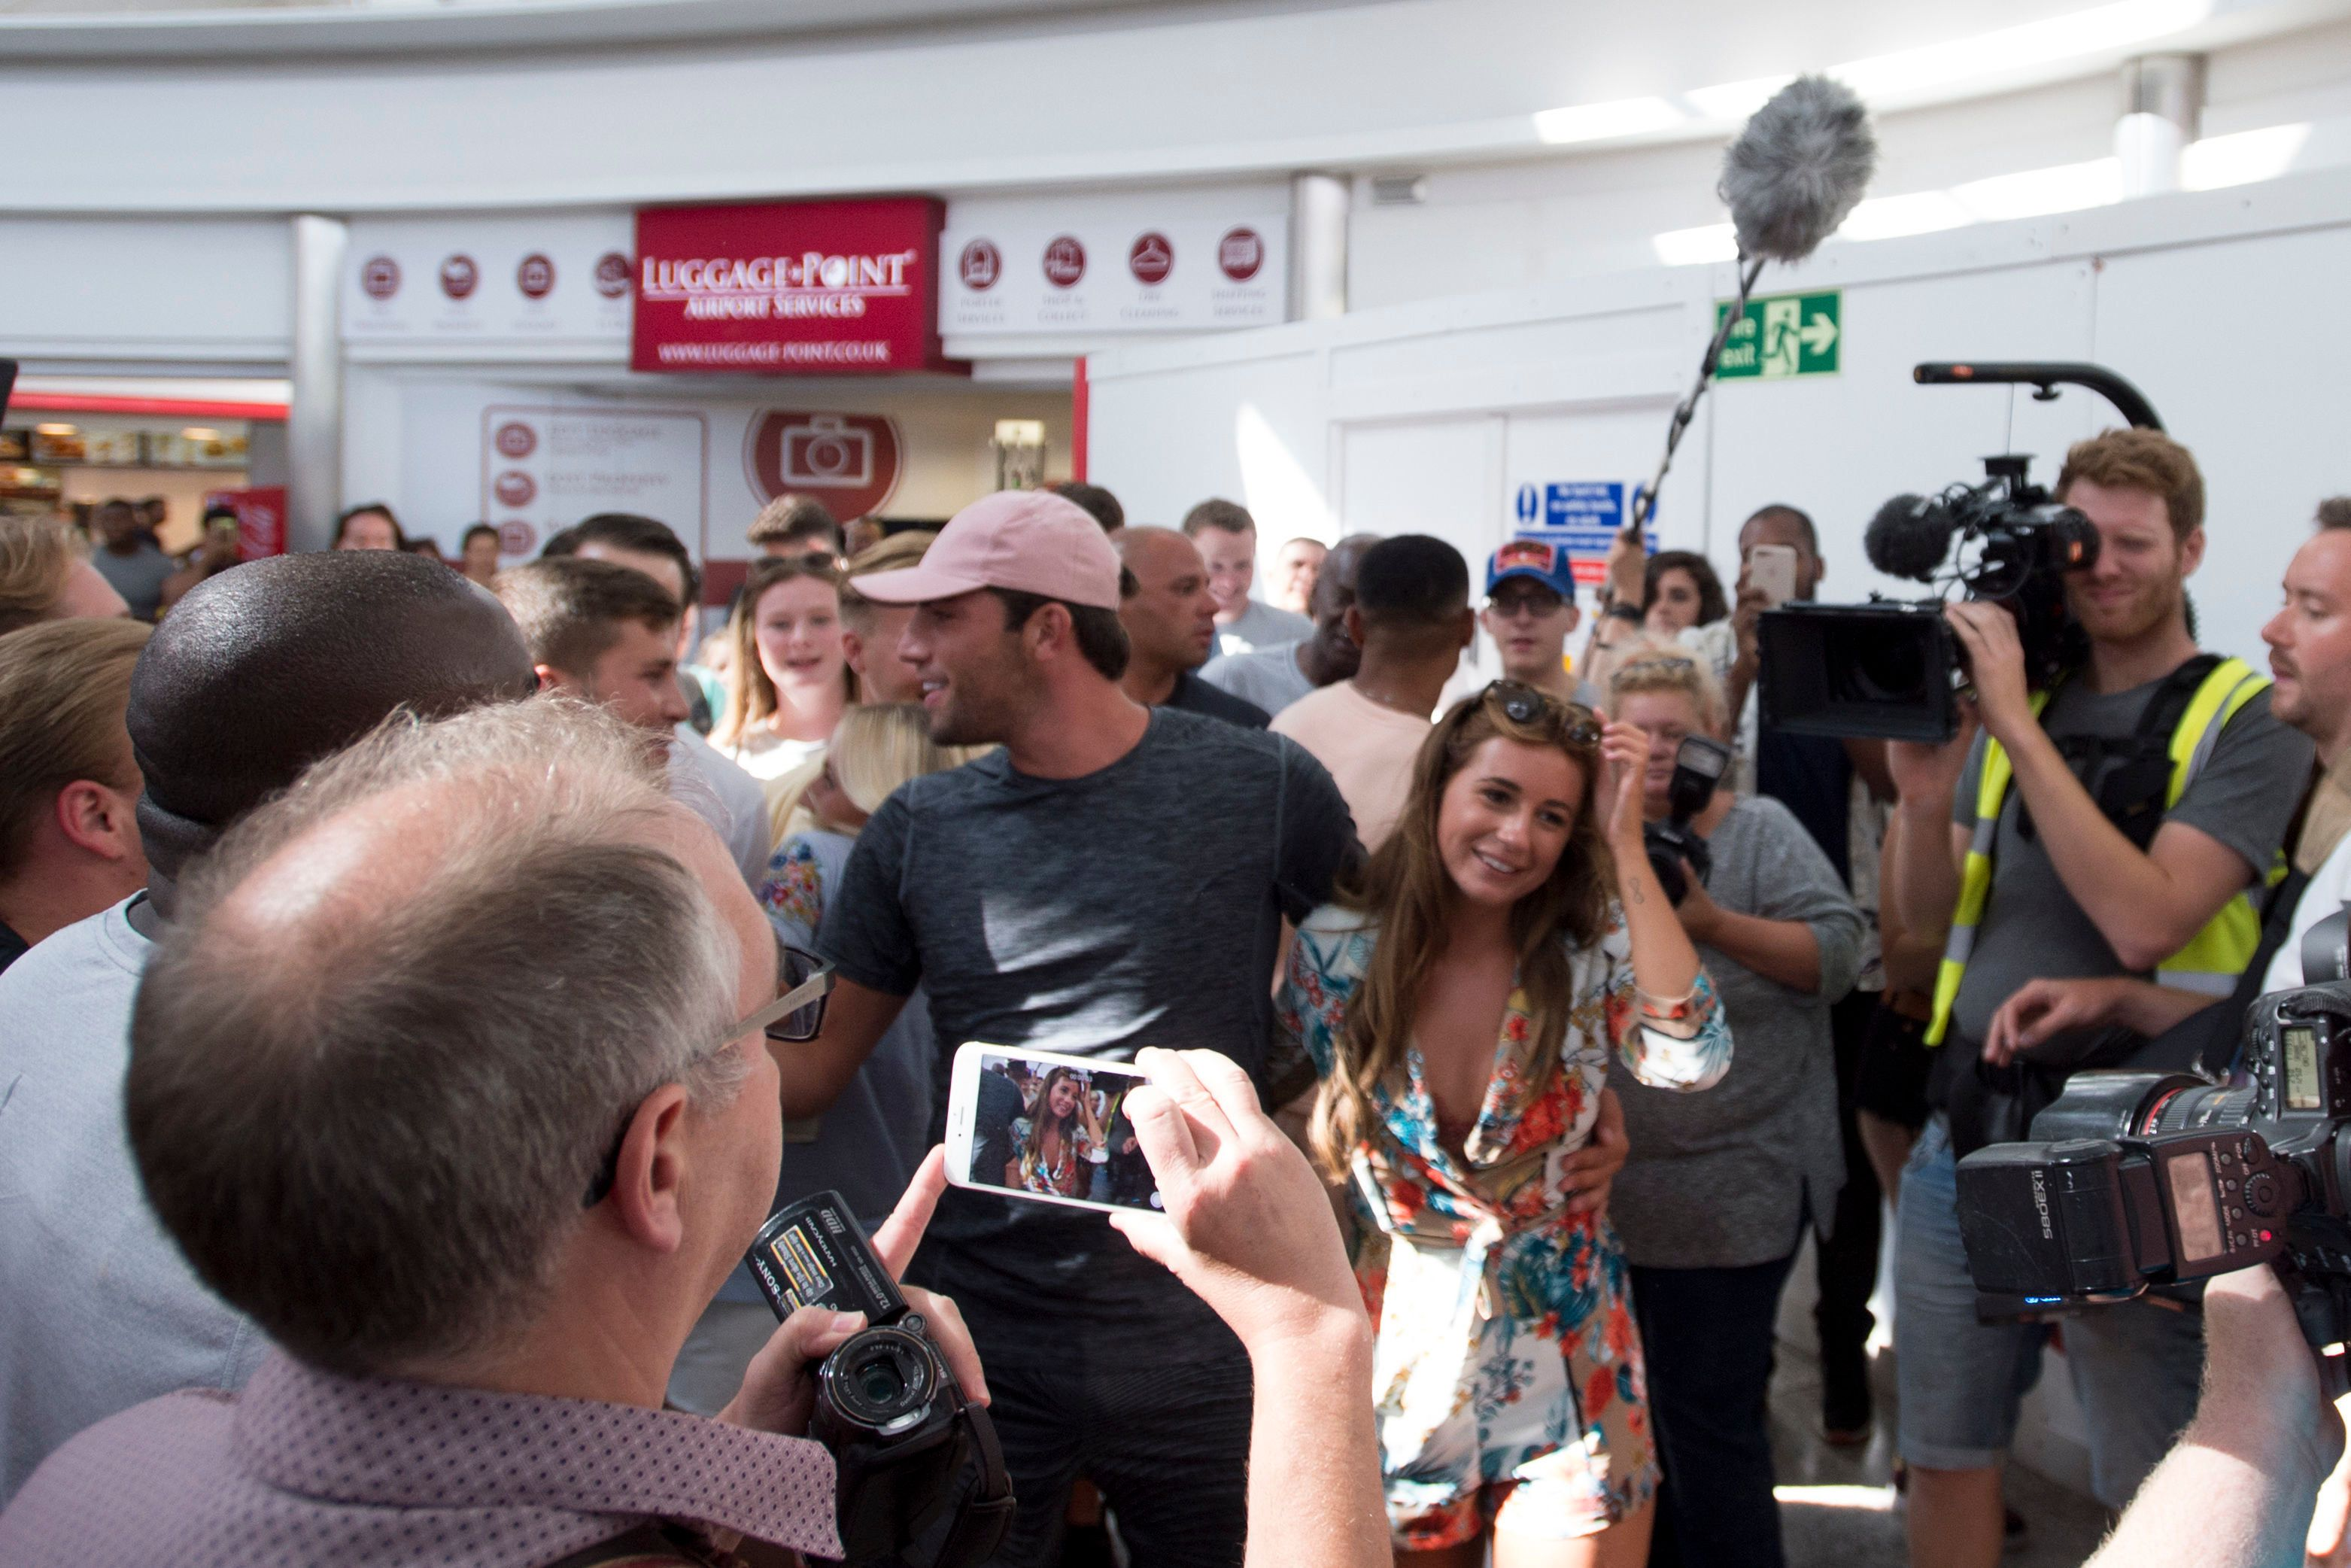 Jack and Dani were greeted by a mob of fans as they landed in the